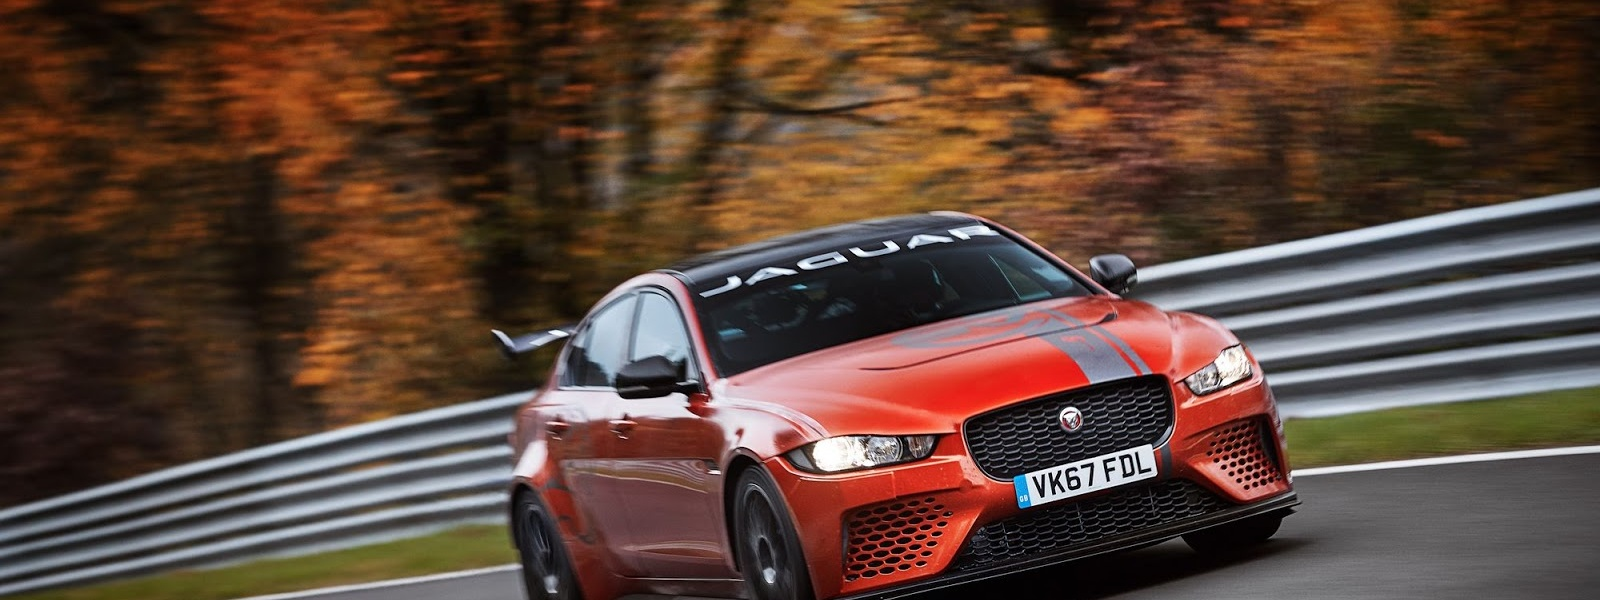 Jaguar-XE-SV-Project-8-Nurburgring-1.jpg